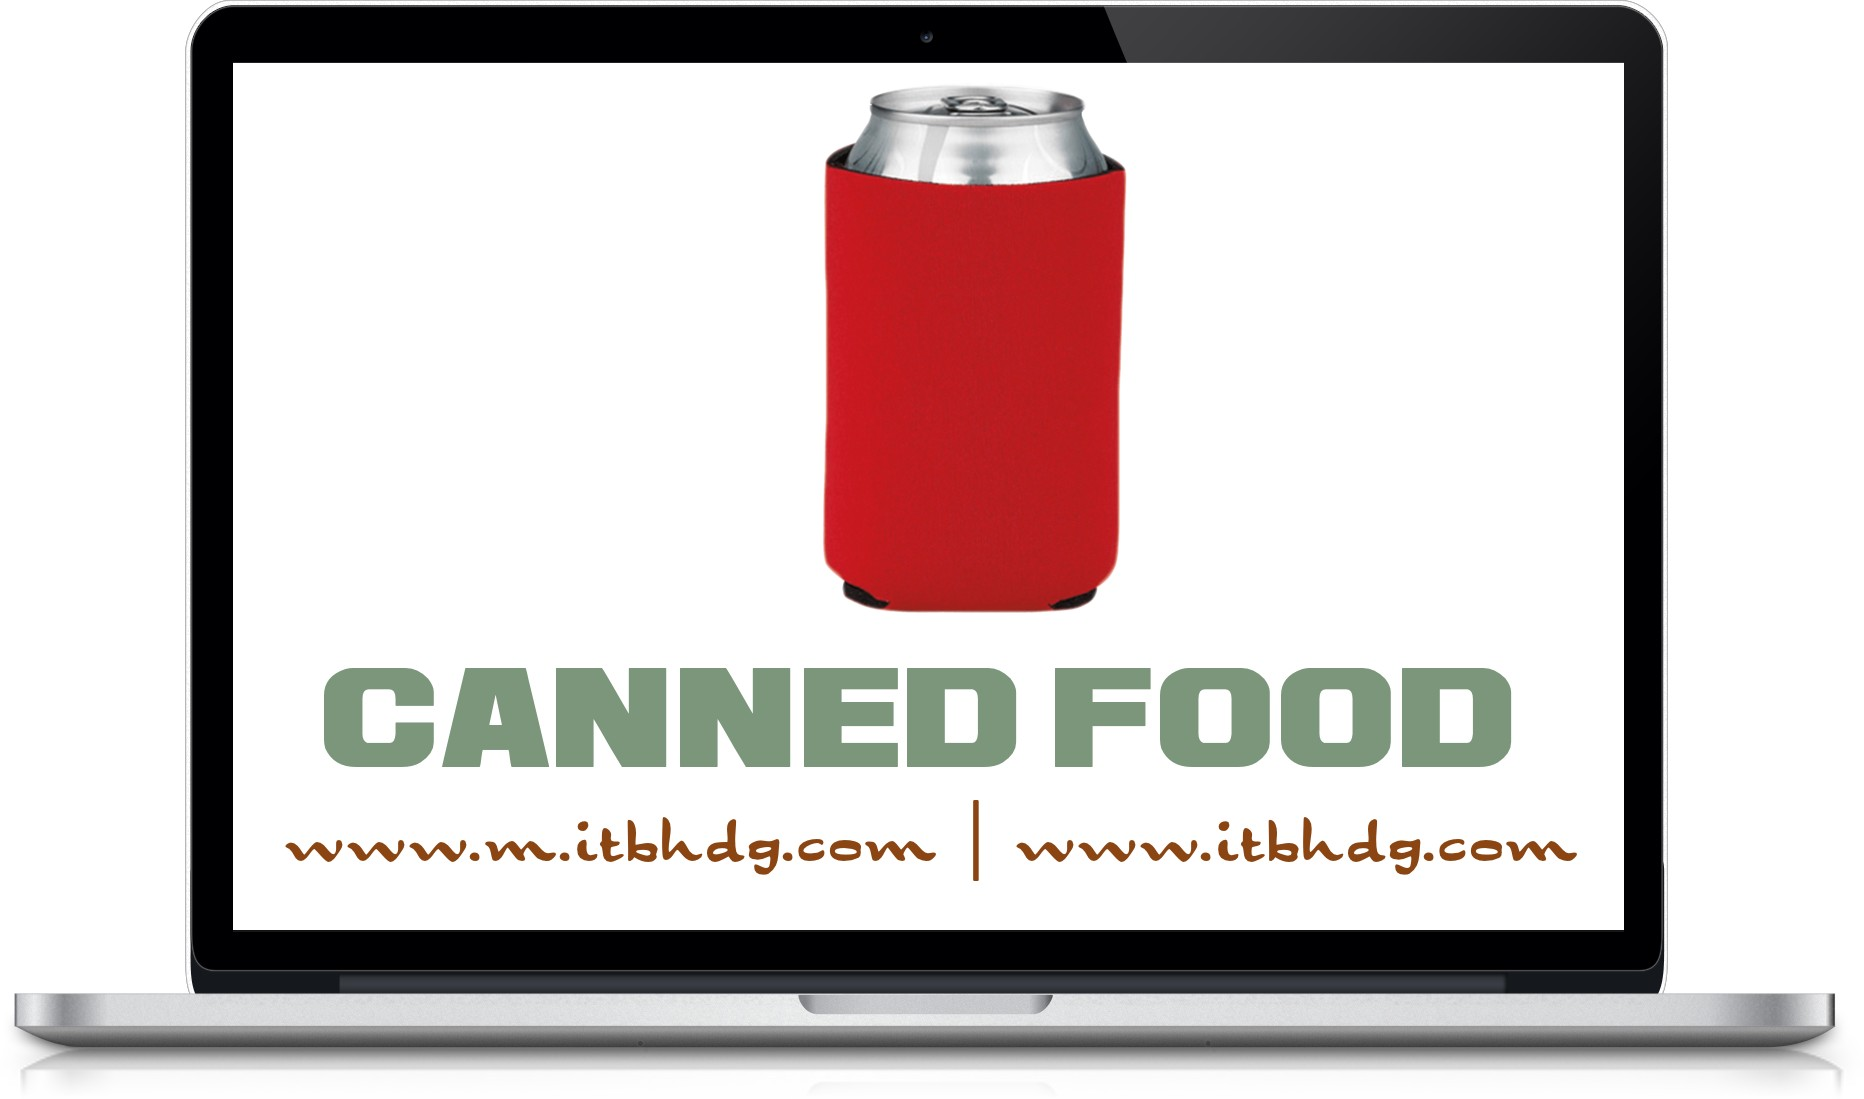 FDA Registration of companies selling foods in metal tins and cans | www.m.itbhdg.com | www.itbhdg.com